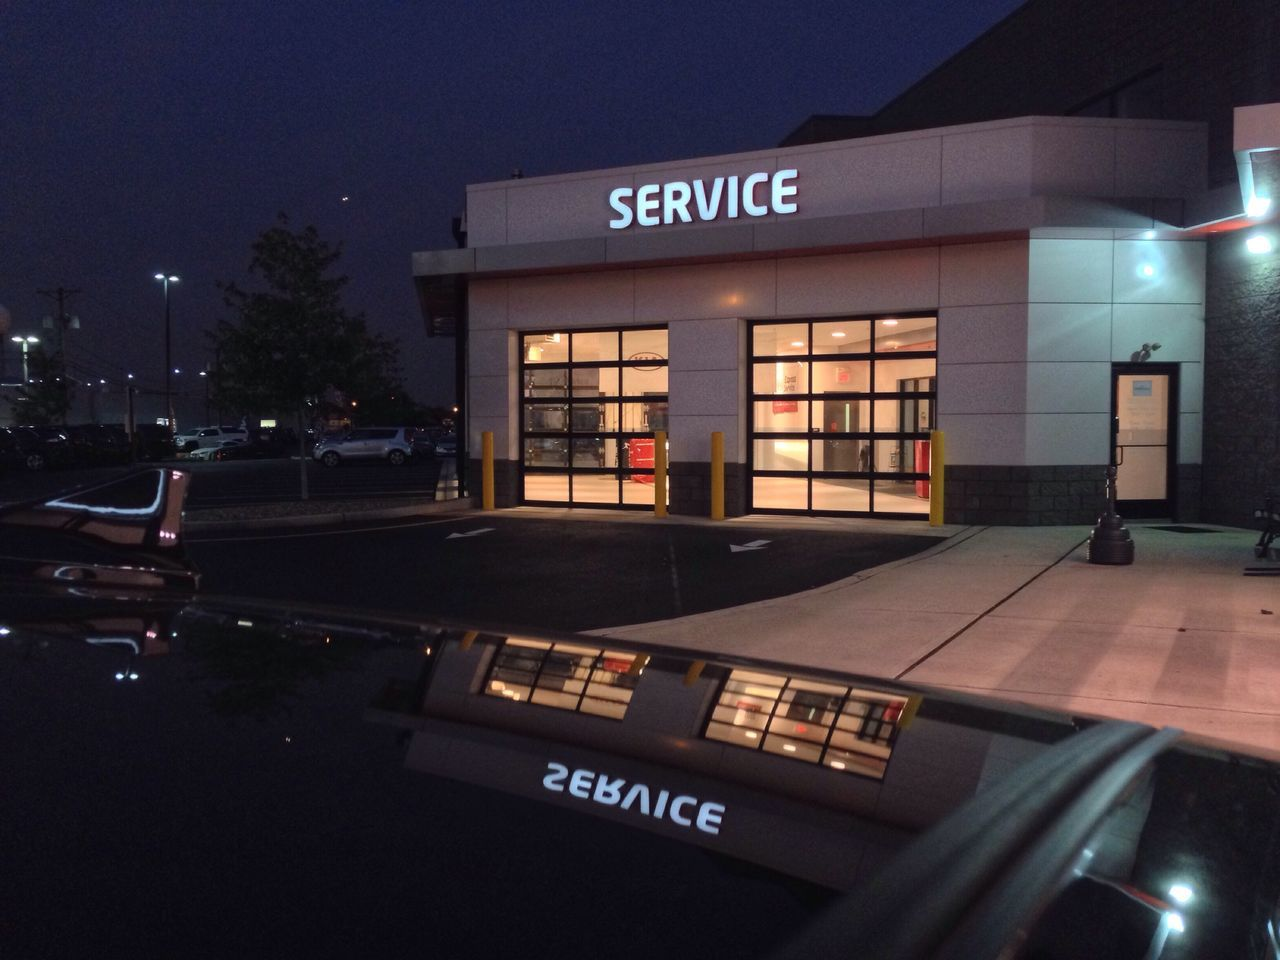 Service Service Bay Garage Garage Door Service Drive Garage Doors Service Cars Car Dealership Service Car Dealership